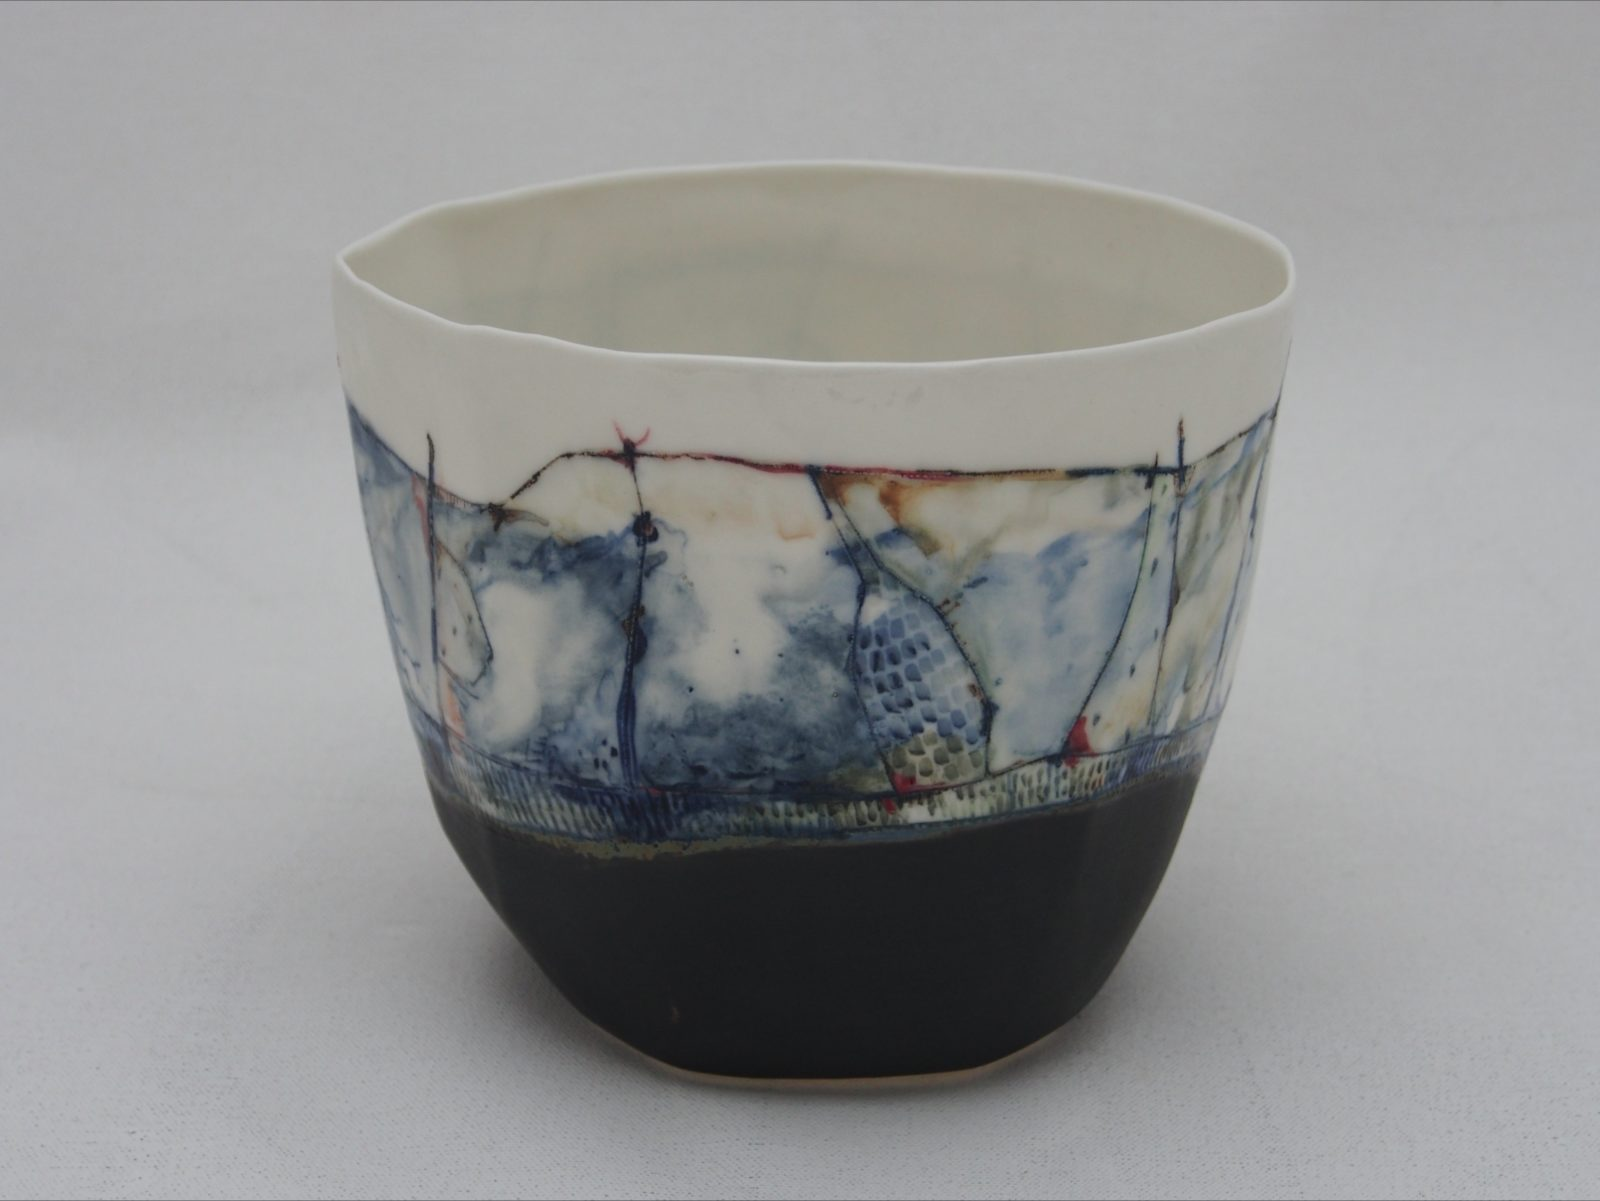 Medium size bowl made of porcelain clay with hand painted abstract landscape design and gold lustre.